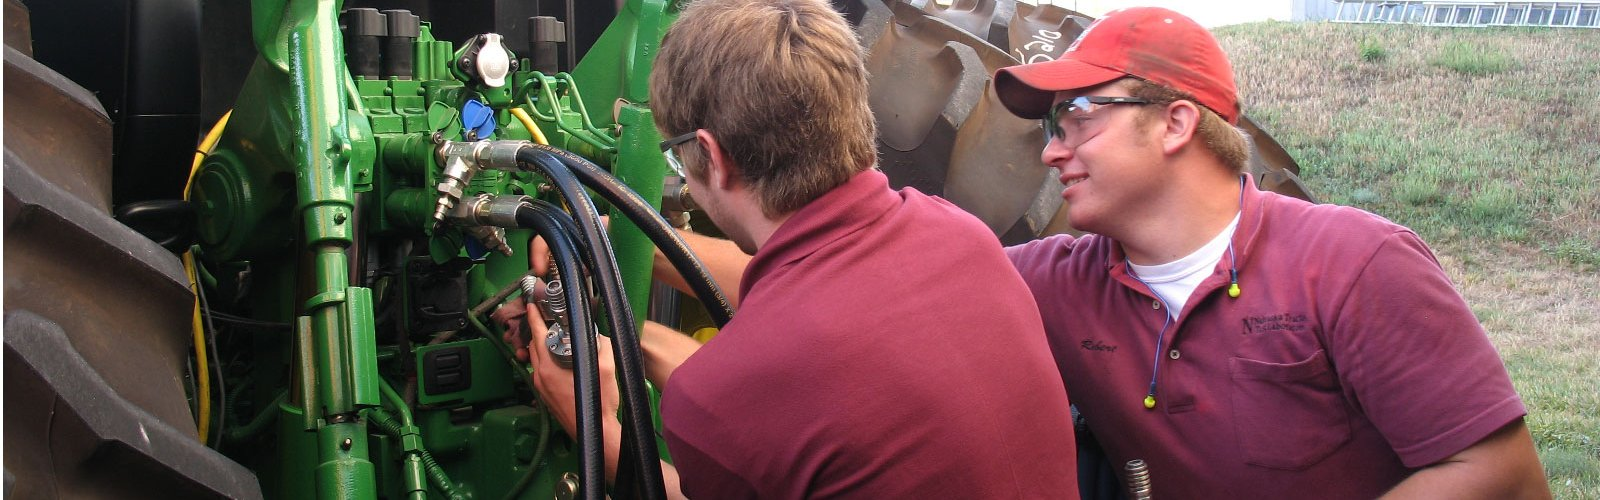 Students working on a tractor